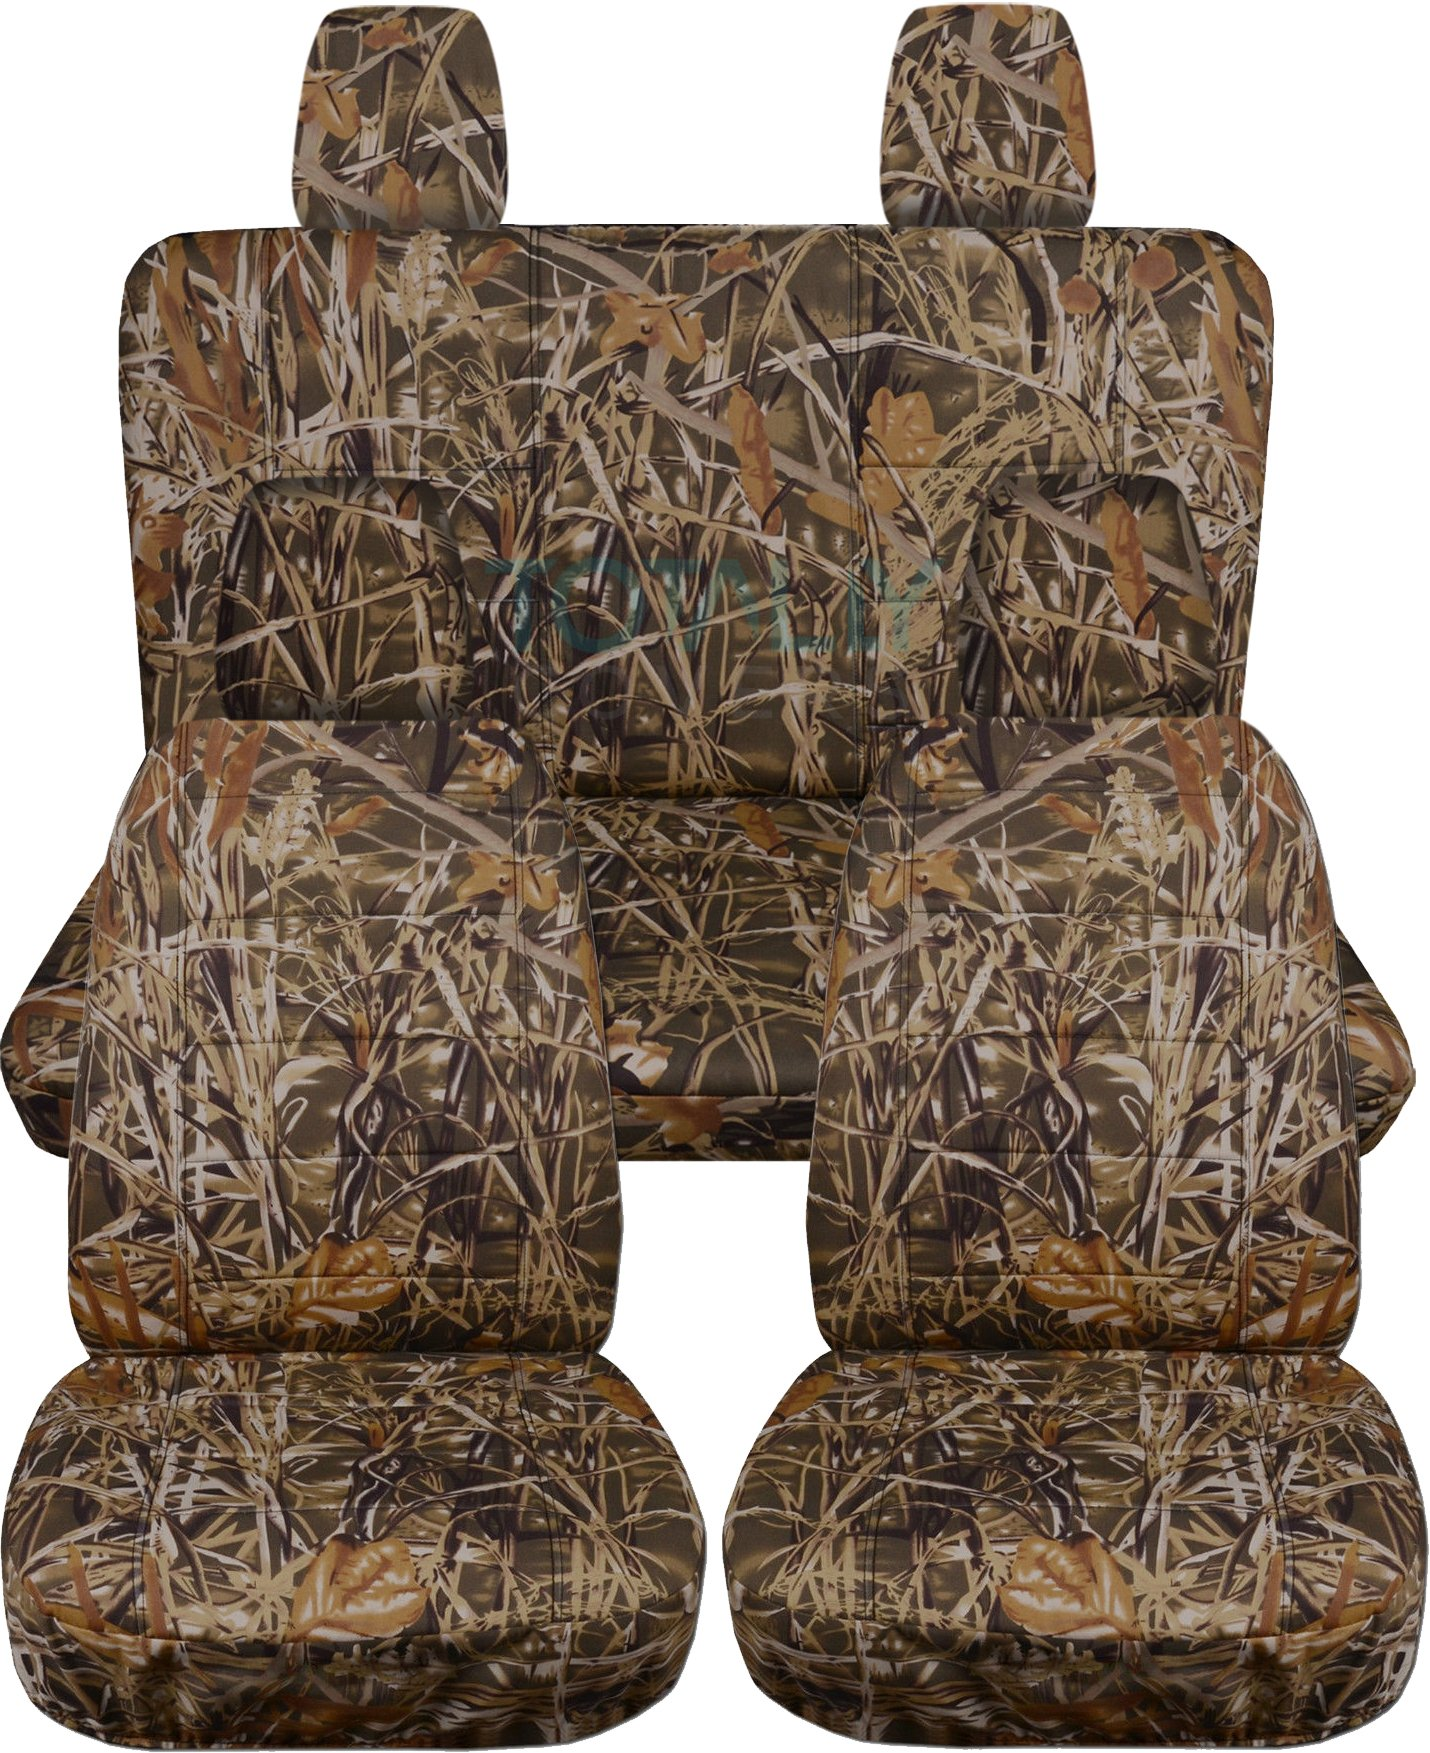 Totally Covers Fits 2011-2018 Jeep Wrangler JK Camo Seat Covers: Wetland Camouflage - Full Set: Front & Rear (19 Prints) 2012 2013 2014 2015 2016 2017 2-Door/4-Door Complete Back Solid/Split Bench